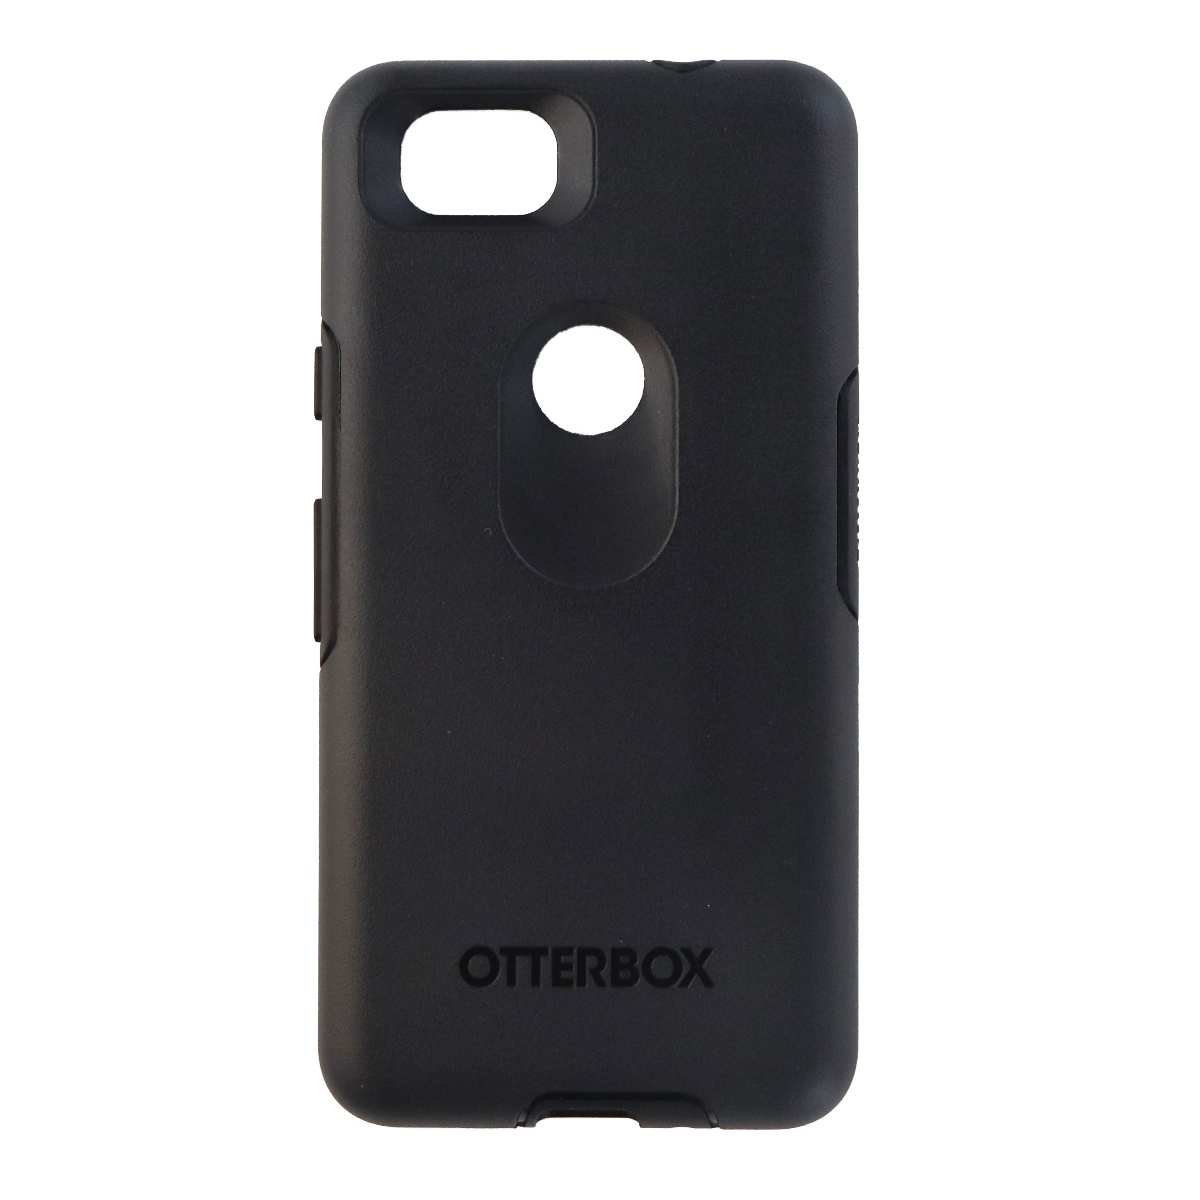 OtterBox Symmetry Series Hybrid Hard Case Cover for Google Pixel 2 - Black